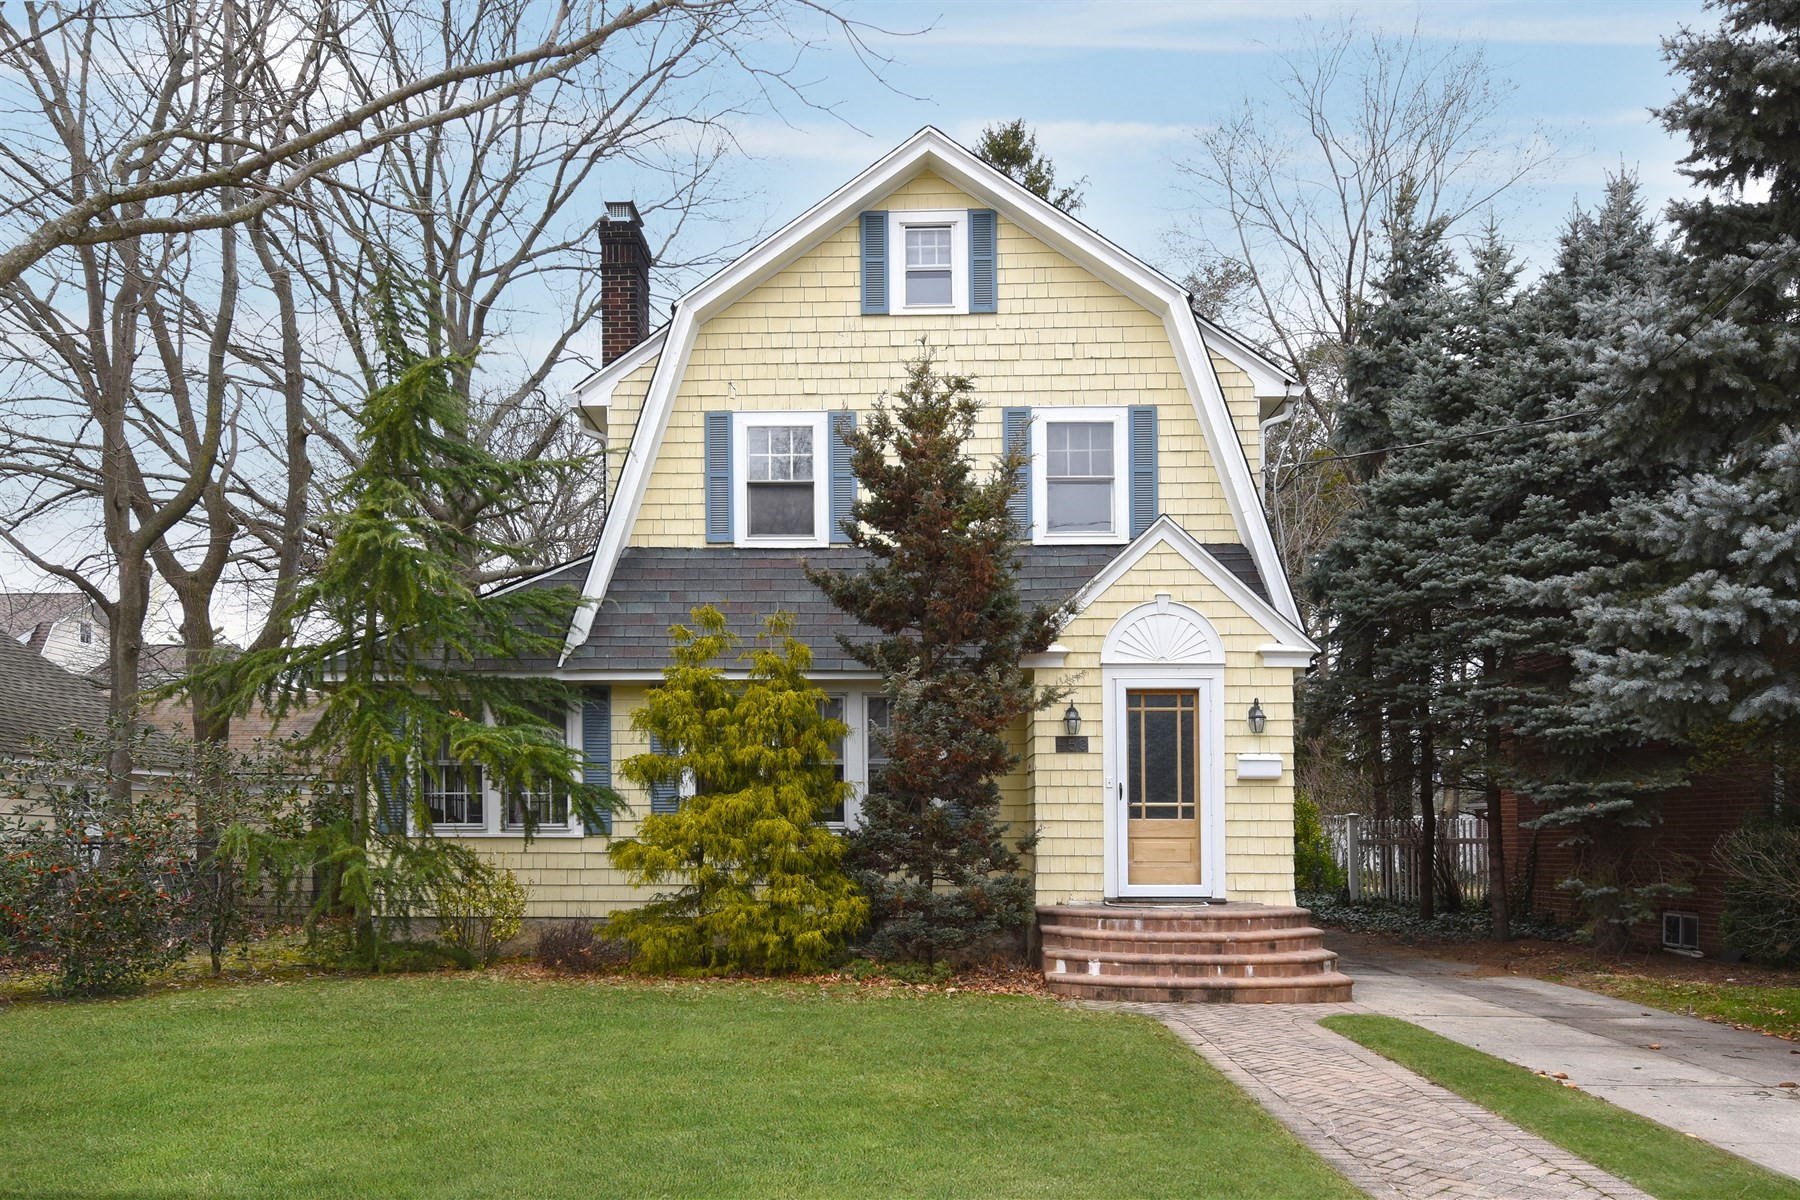 Single Family Home for Sale at 458 Morris Ave , Rockville Centre, NY 11570 458 Morris Ave, Rockville Centre, New York, 11570 United States